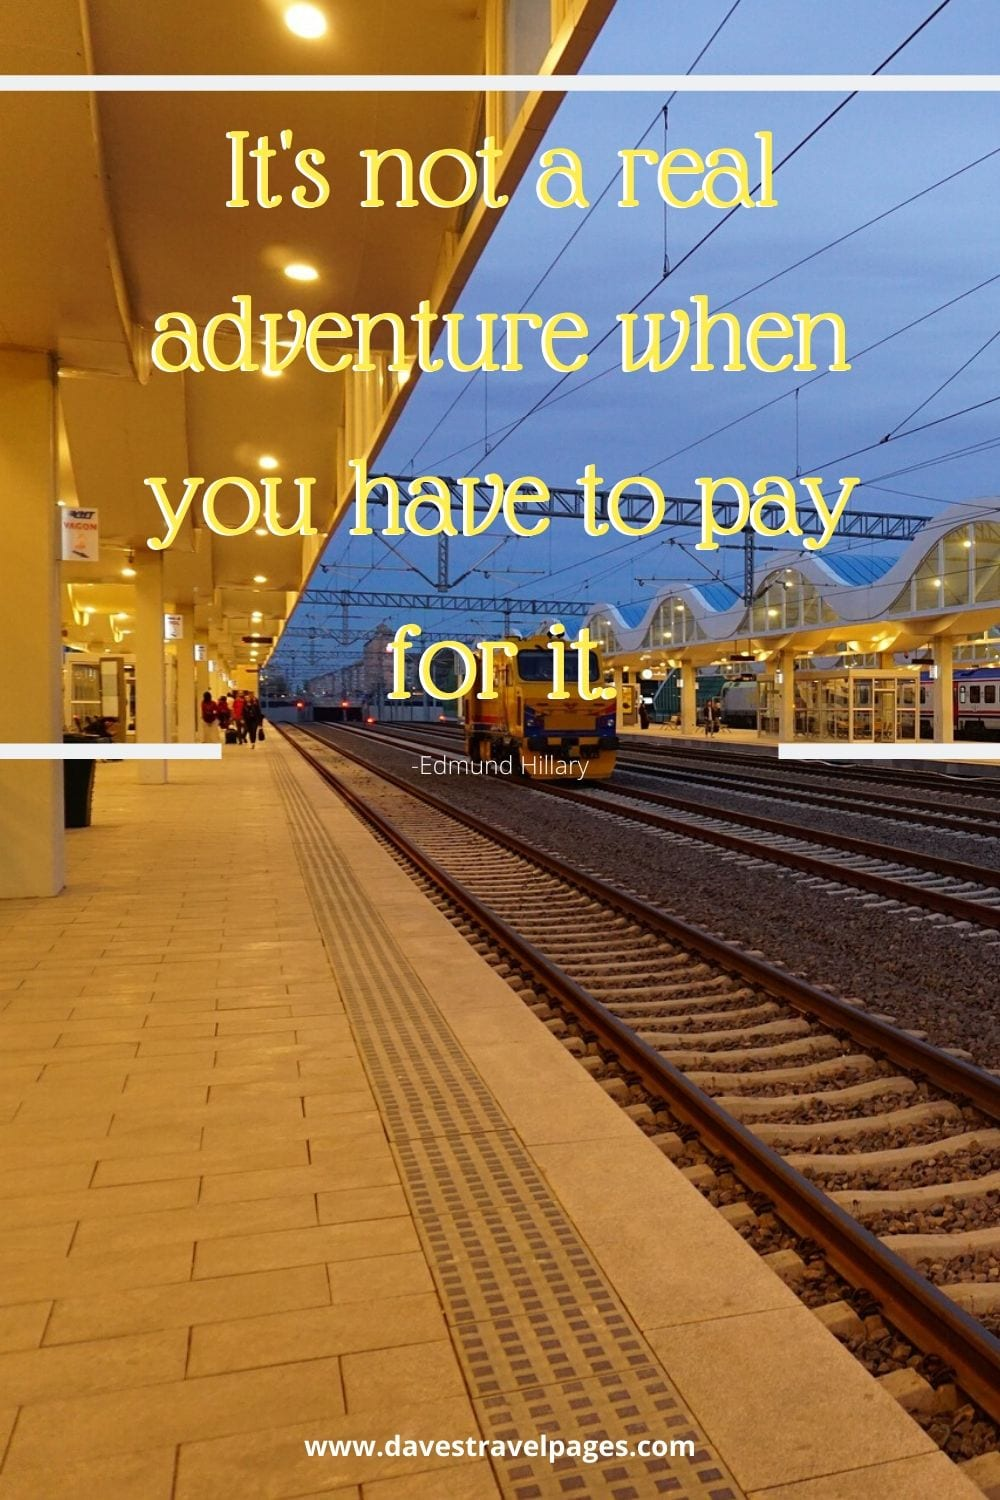 Funny quote - It's not a real adventure when you have to pay for it. - Edmund Hillary